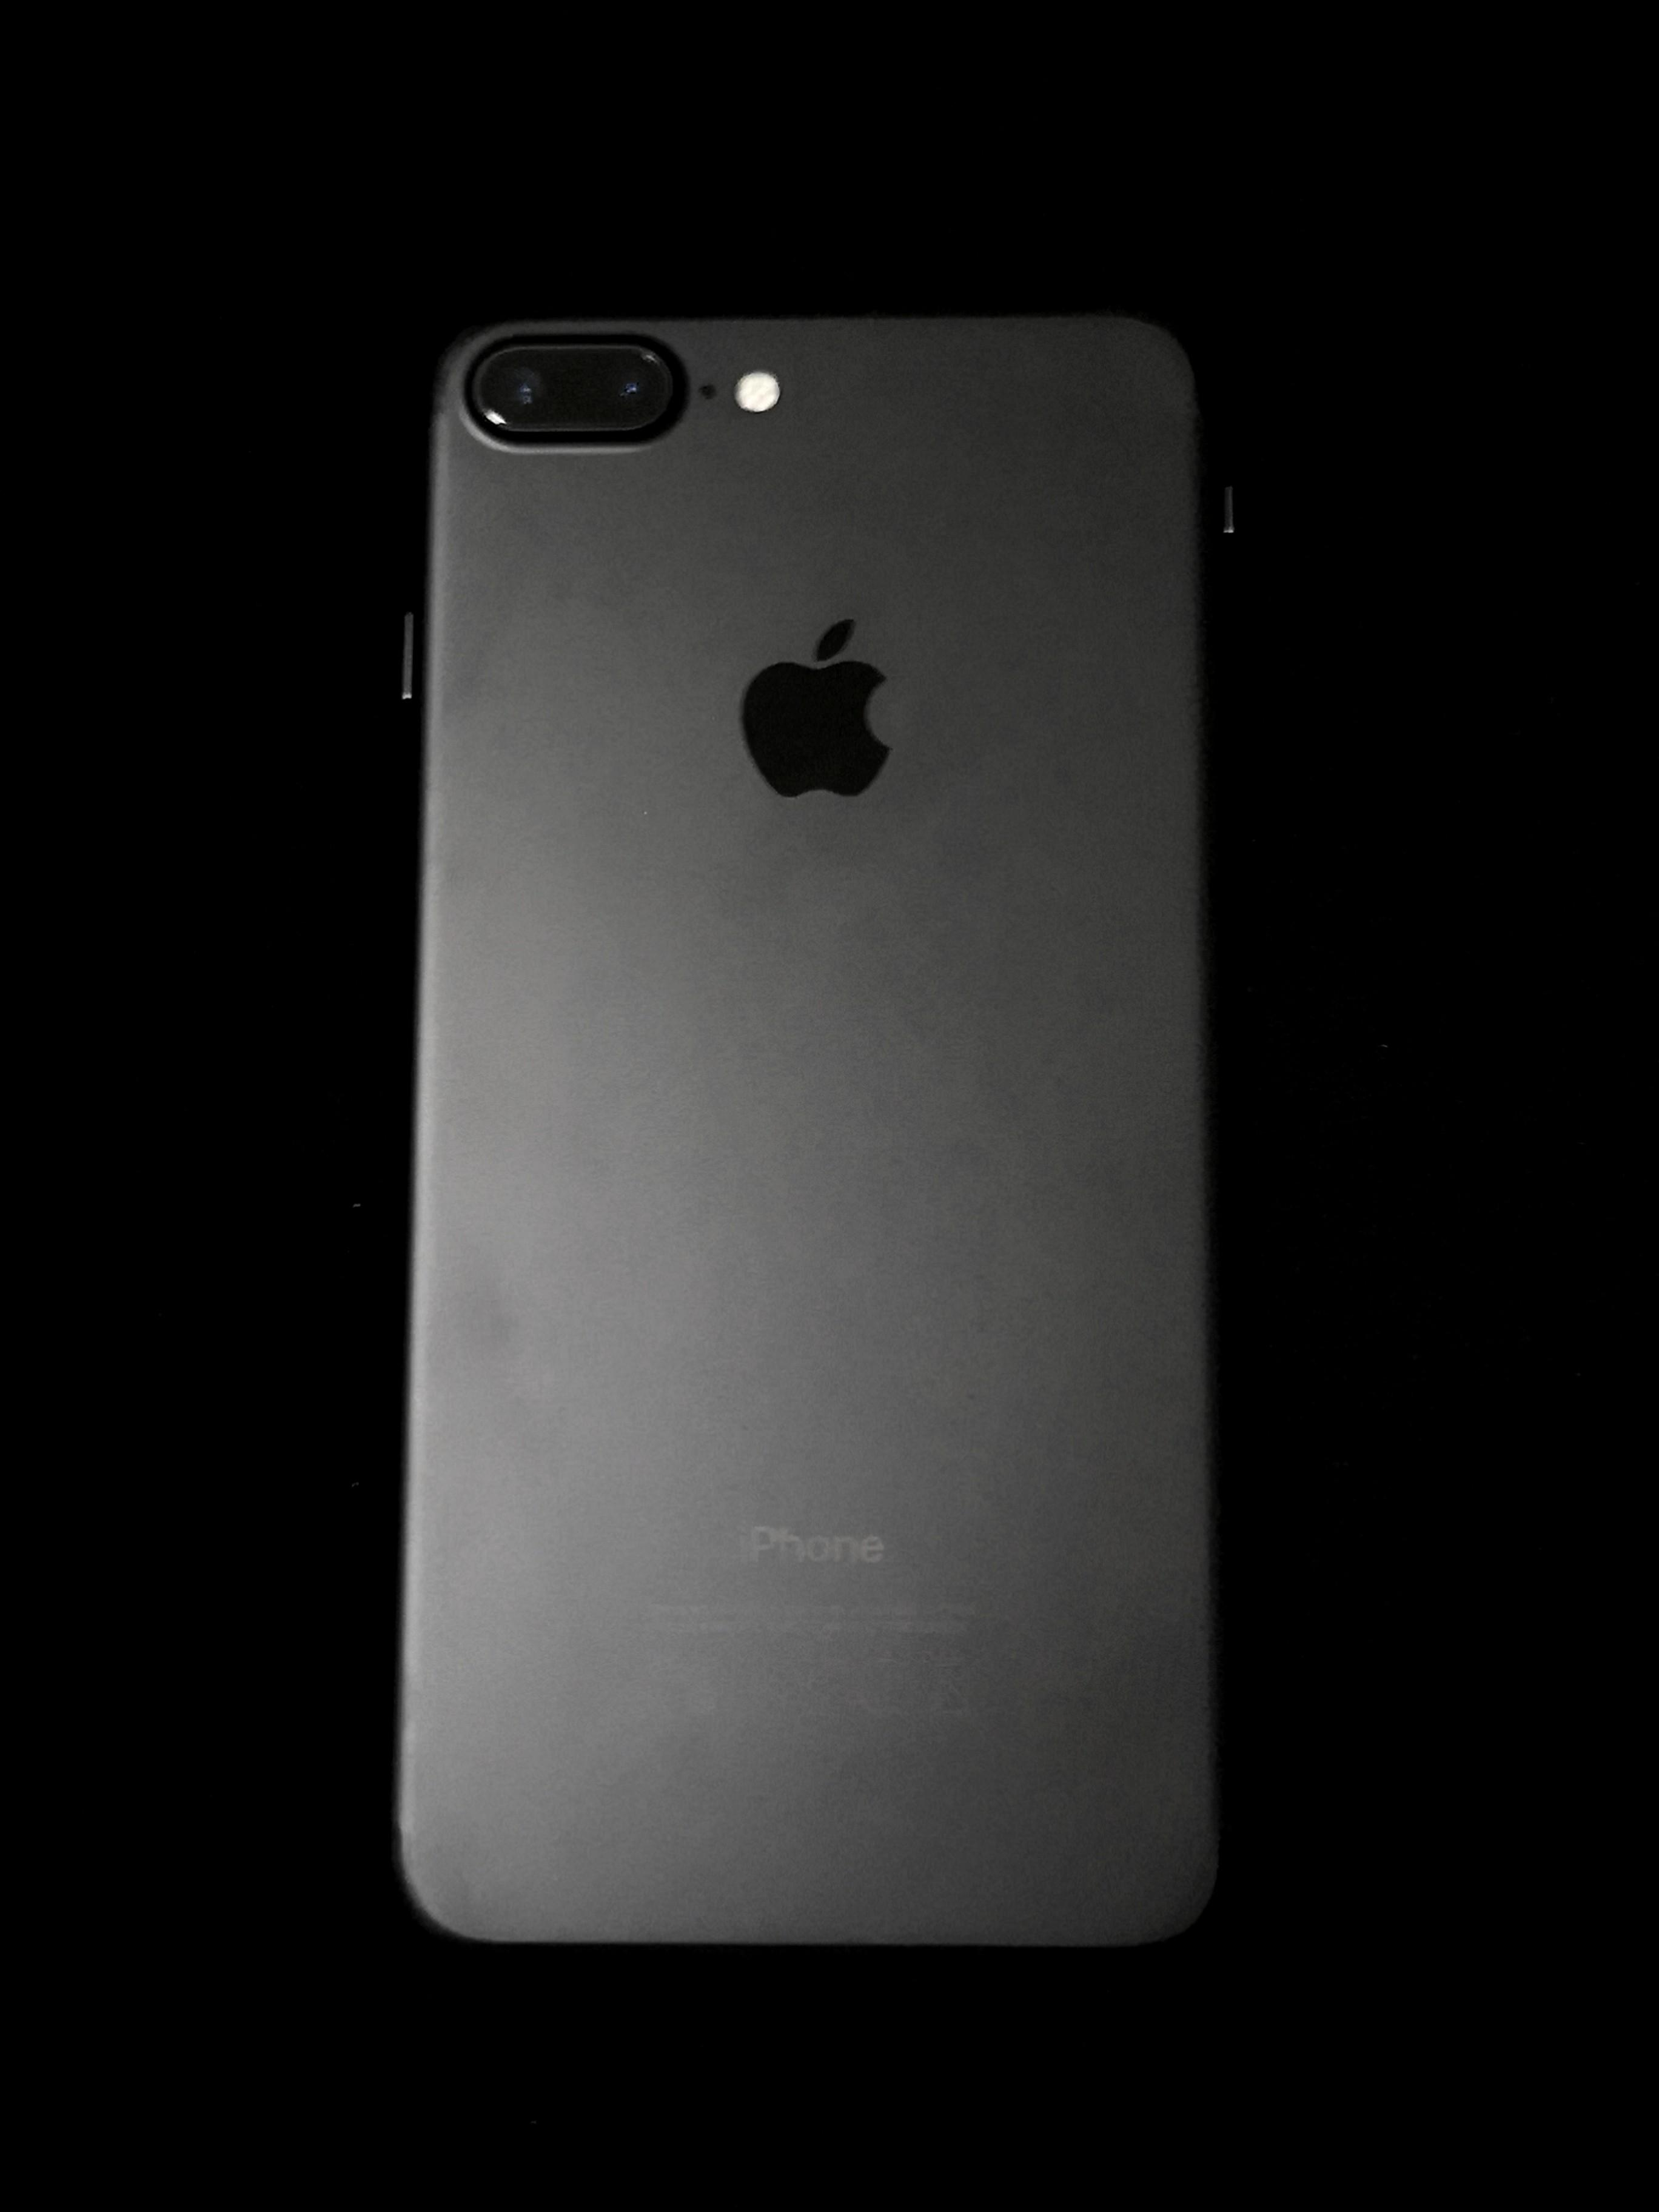 Used Iphone 7 Plus 128GB, Mobile Phones & Tablets, iPhone